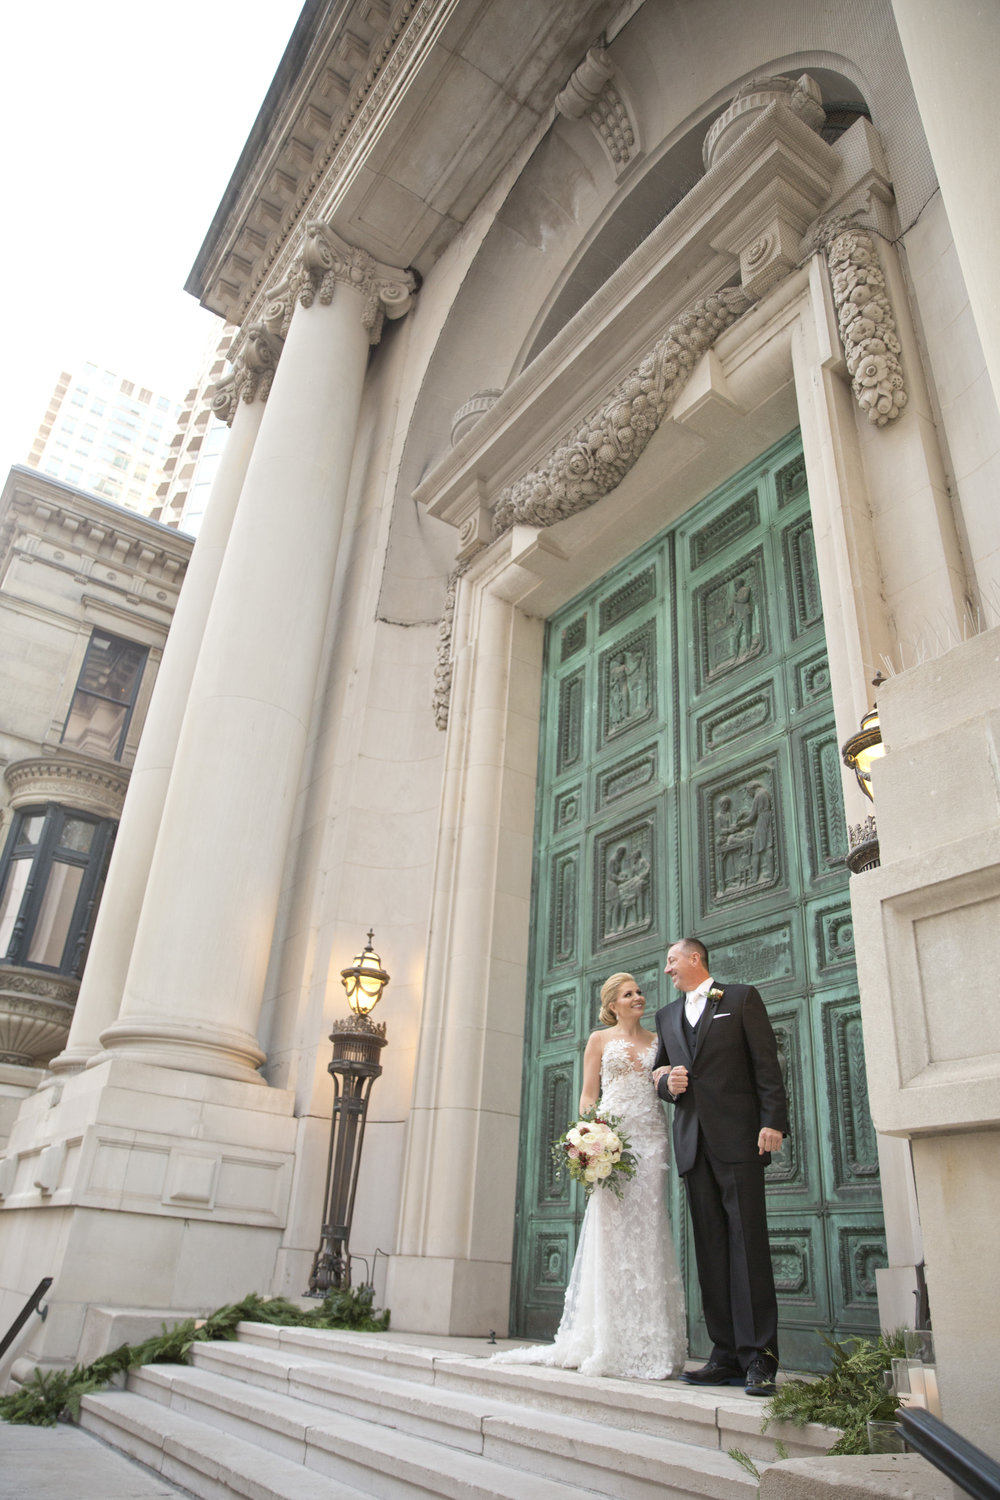 Chicago Wedding-Clover Events-Chicago Wedding Planner-Viceroy Hotel-Murphy Auditorium-Chicago Wedding Coordinator